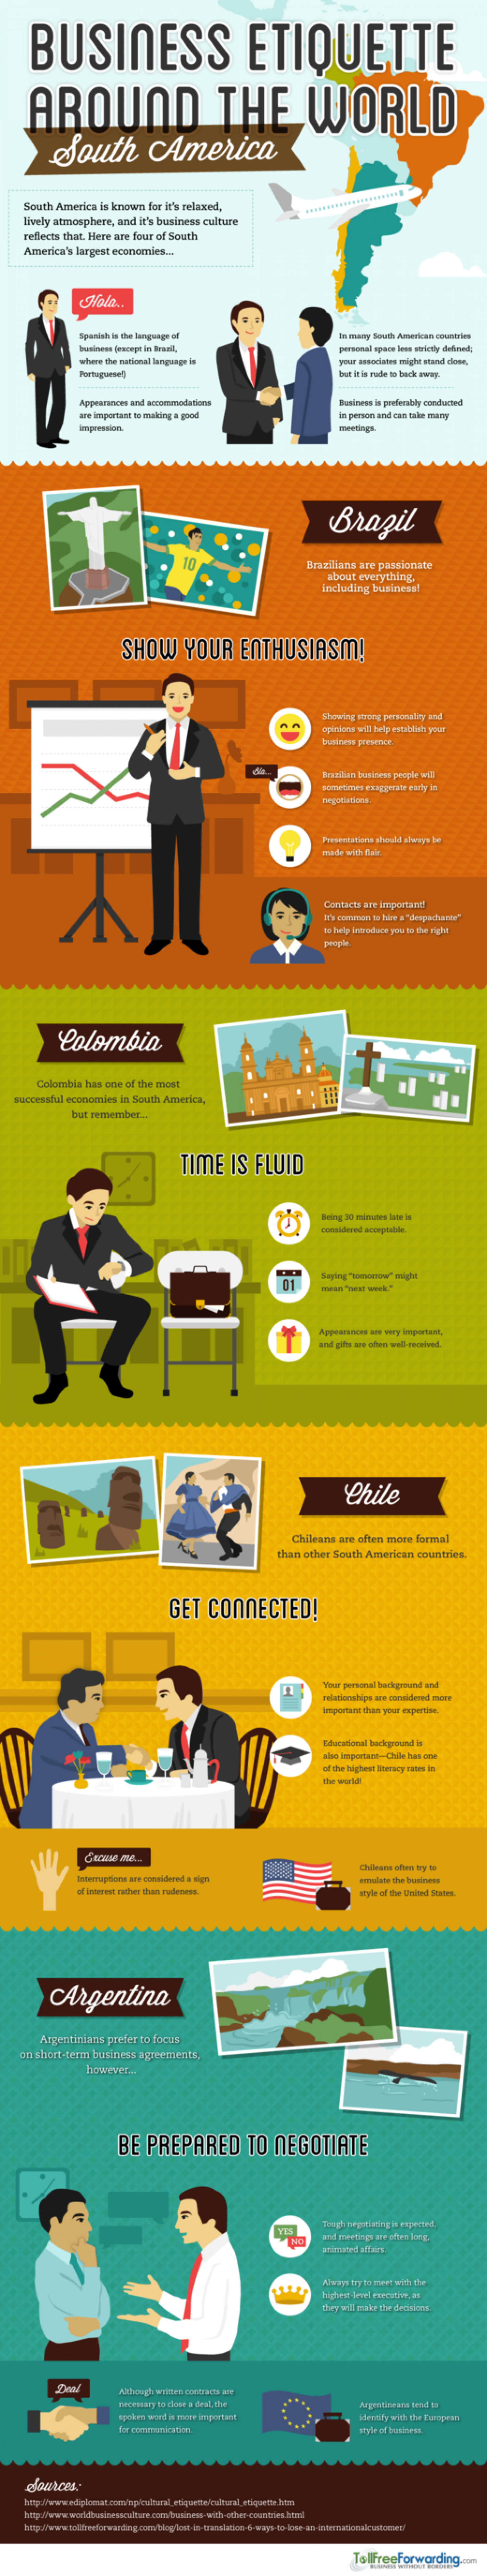 Business Etiquette: South America Infographic